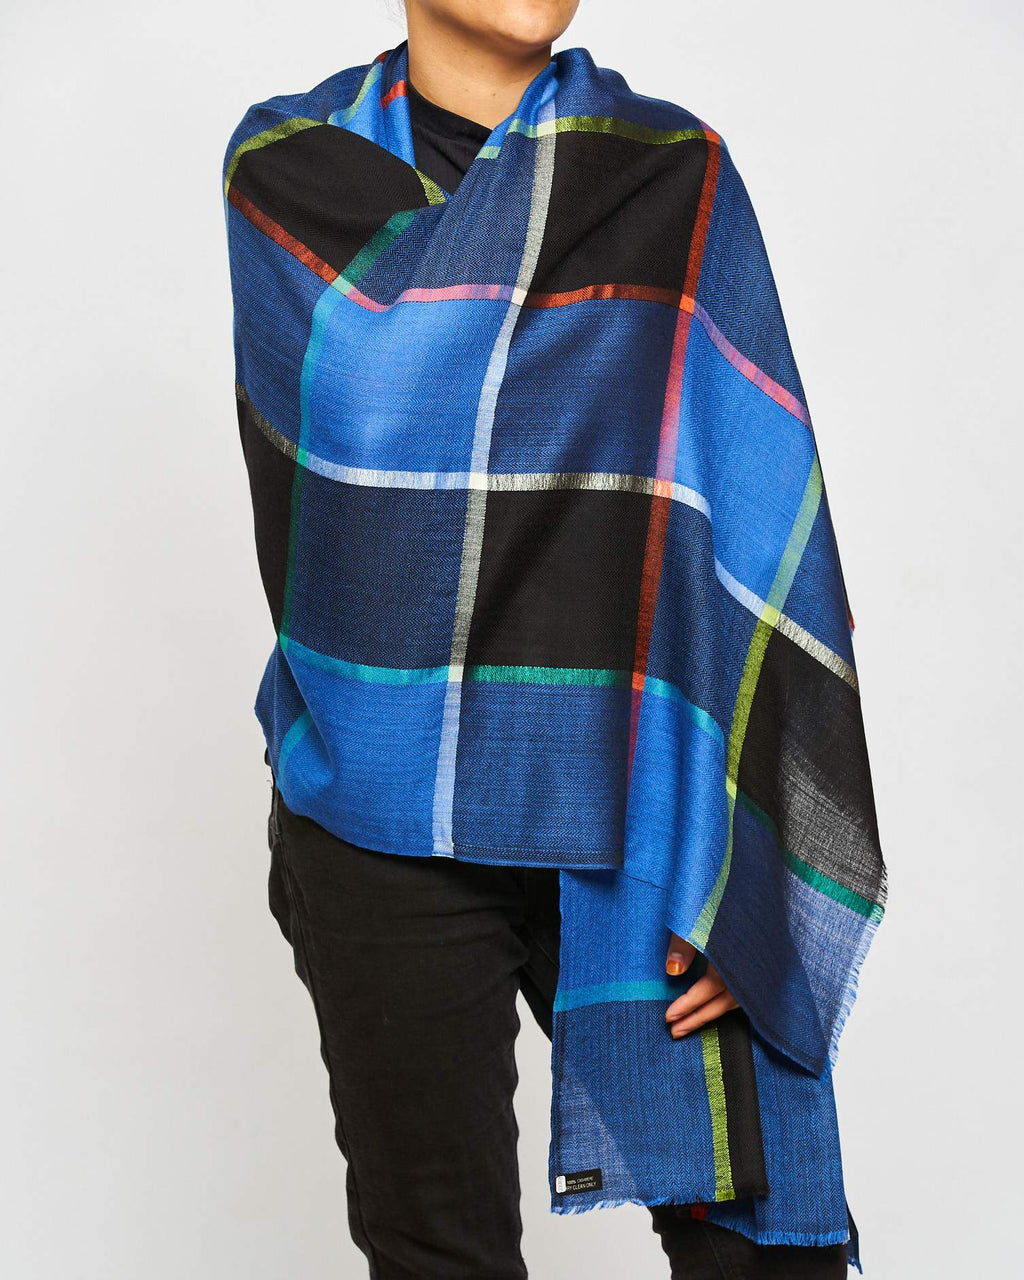 Cashmere - Large Check Blue/Black